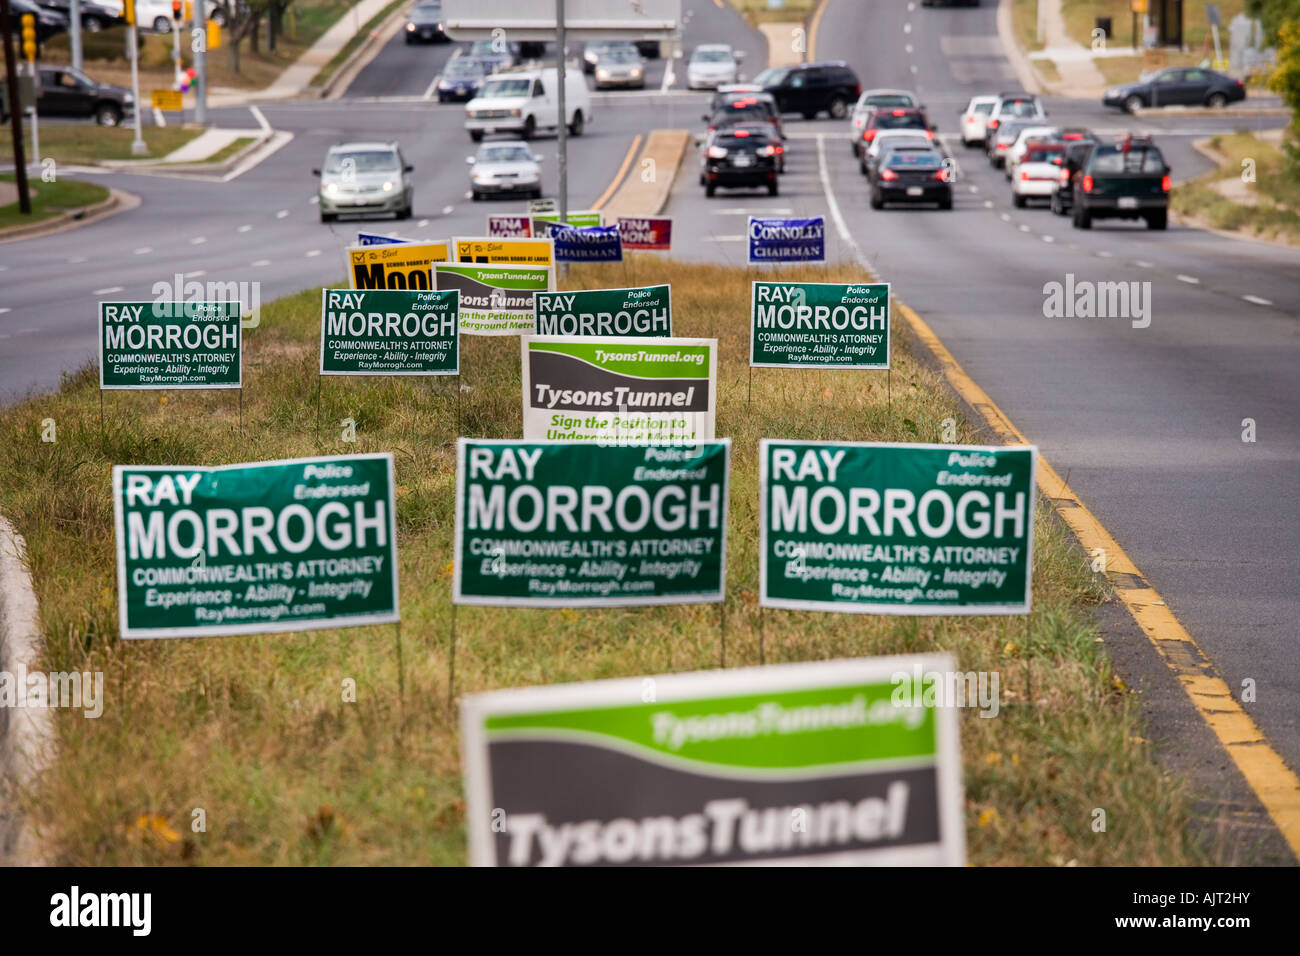 Posters on Leesburg Pike for local elections in Tysons Corner Fairfax County, Virginia near Washington DC - Stock Image